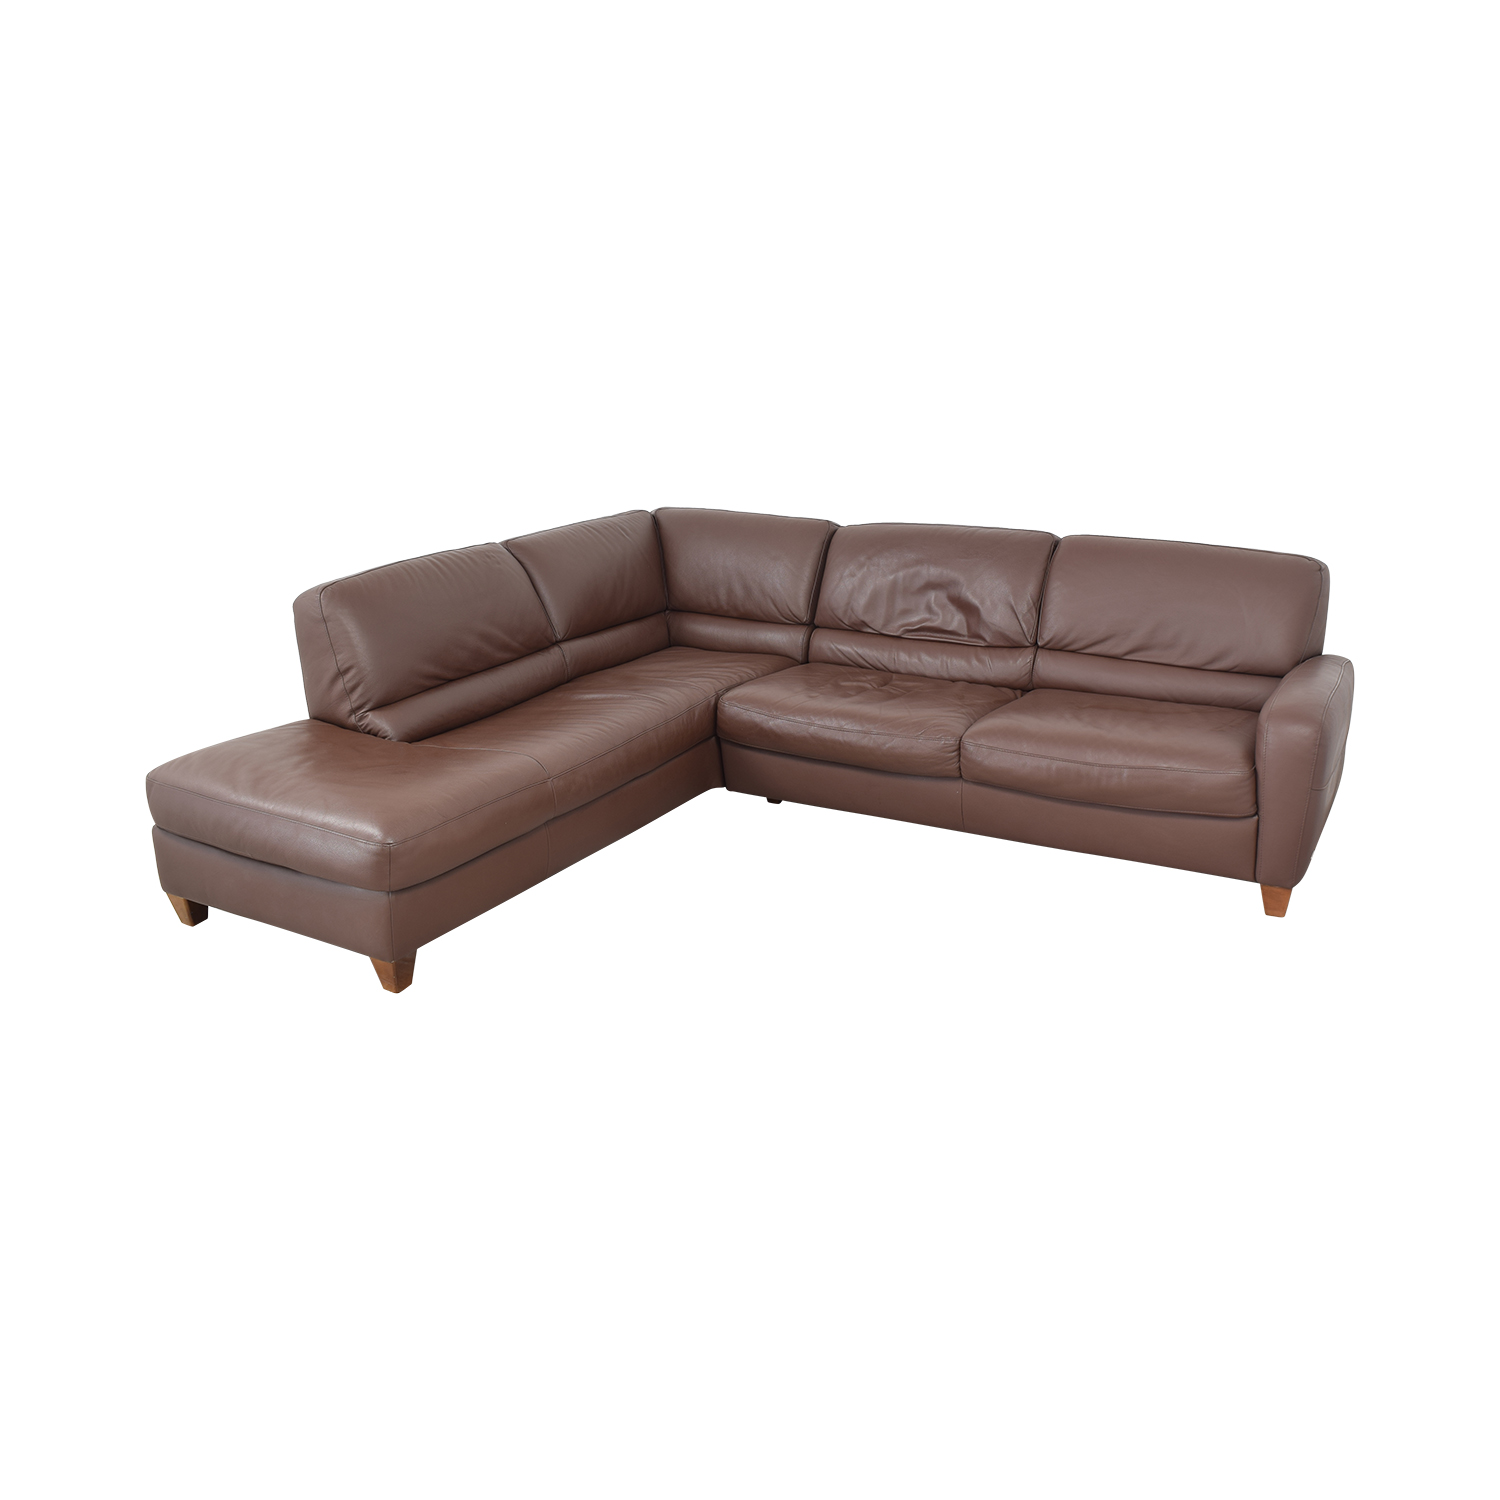 Italsofa Italsofa Sectional Sofa with Chaise for sale